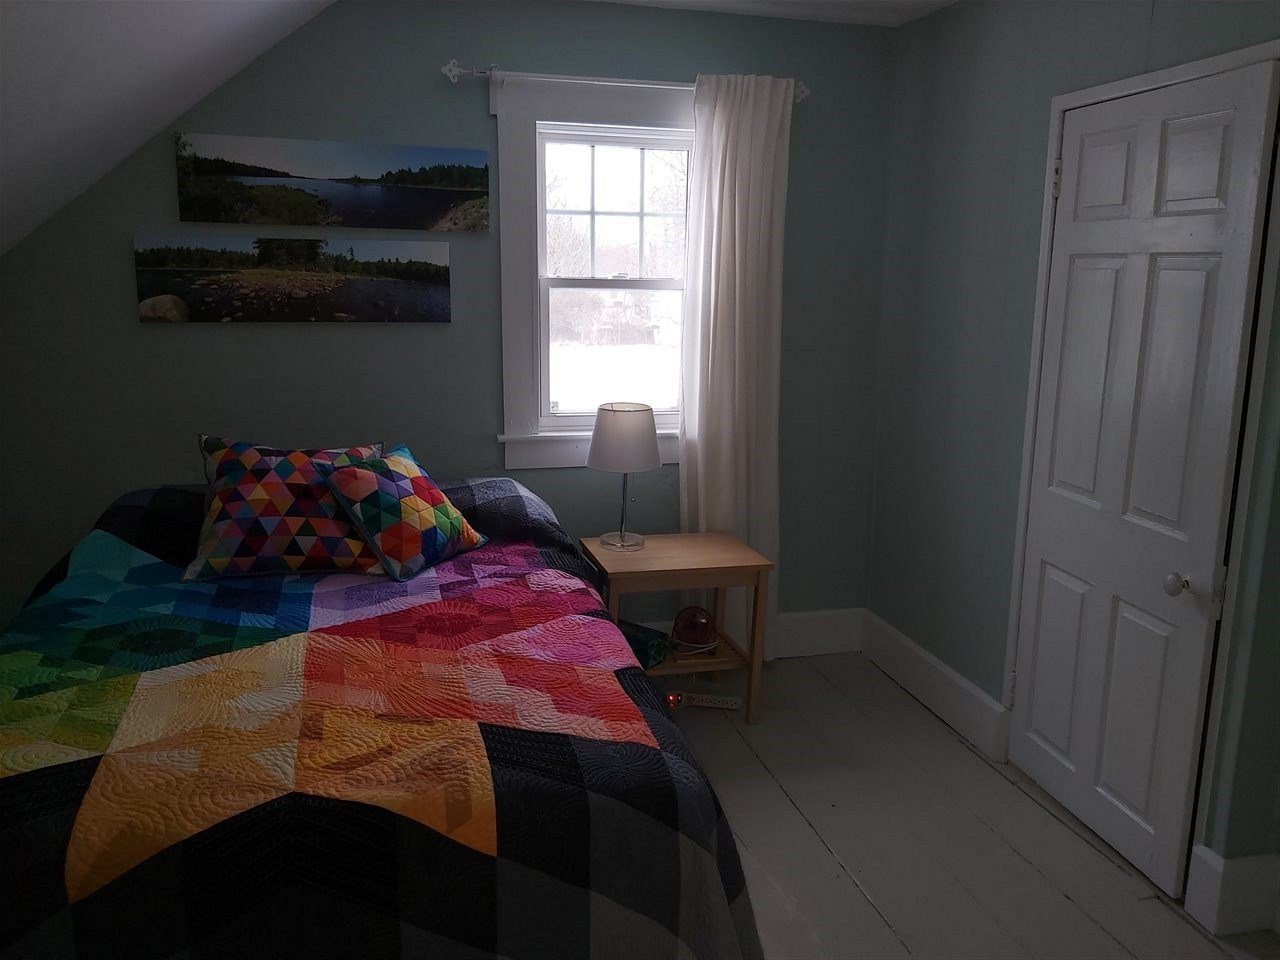 Photo 20: Photos: 2222 North Avenue in Canning: 404-Kings County Residential for sale (Annapolis Valley)  : MLS®# 202001909